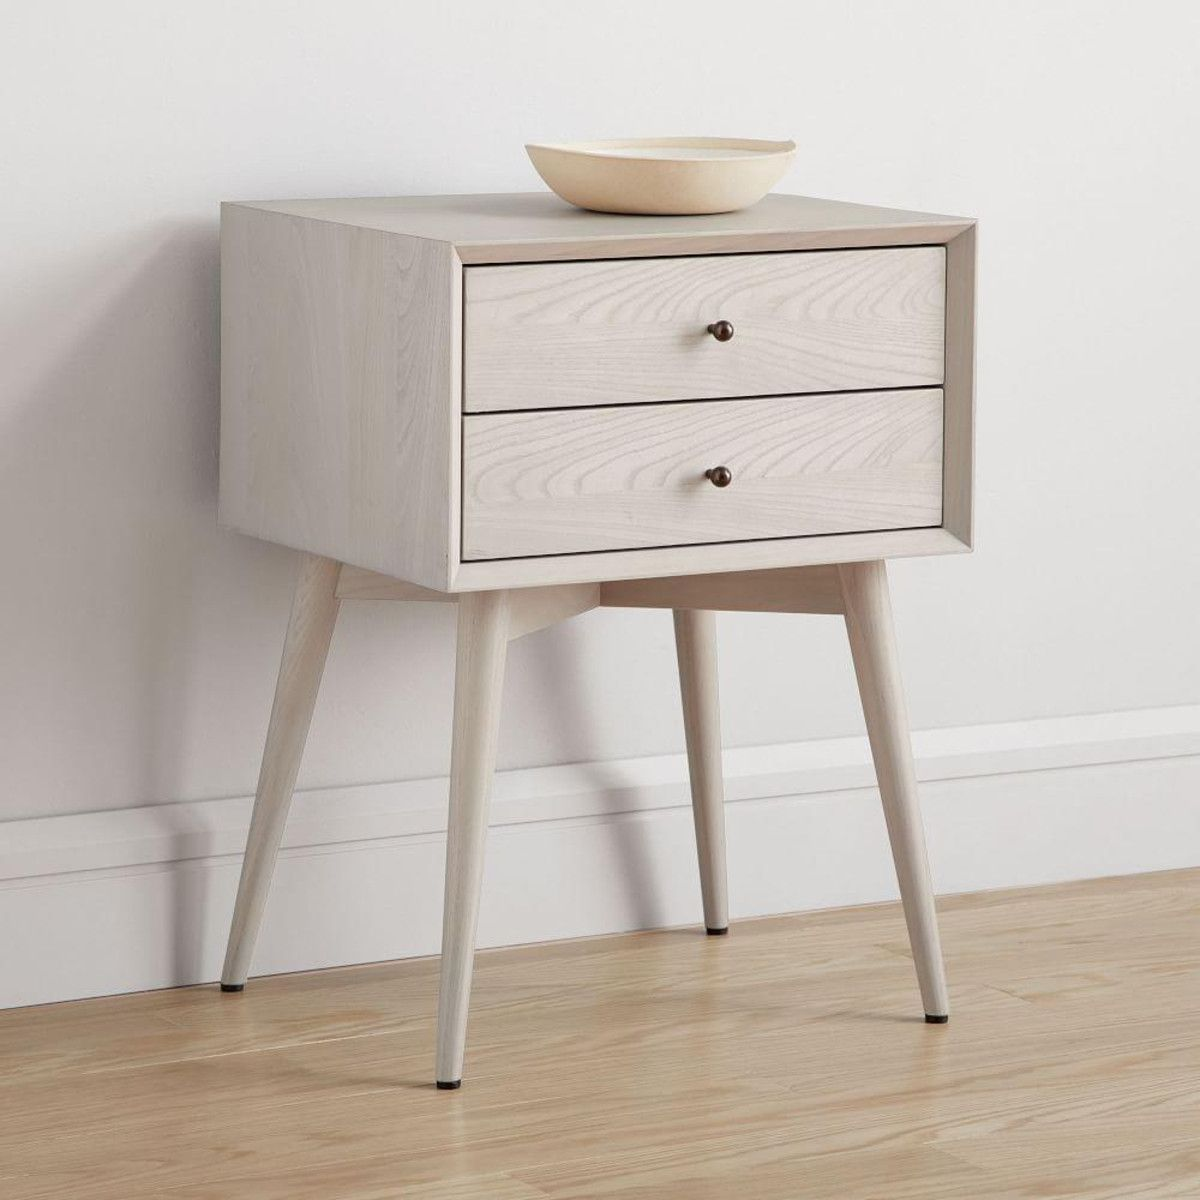 Mid Century Bedside Table Pebble In 2019 West Elm Mid Century